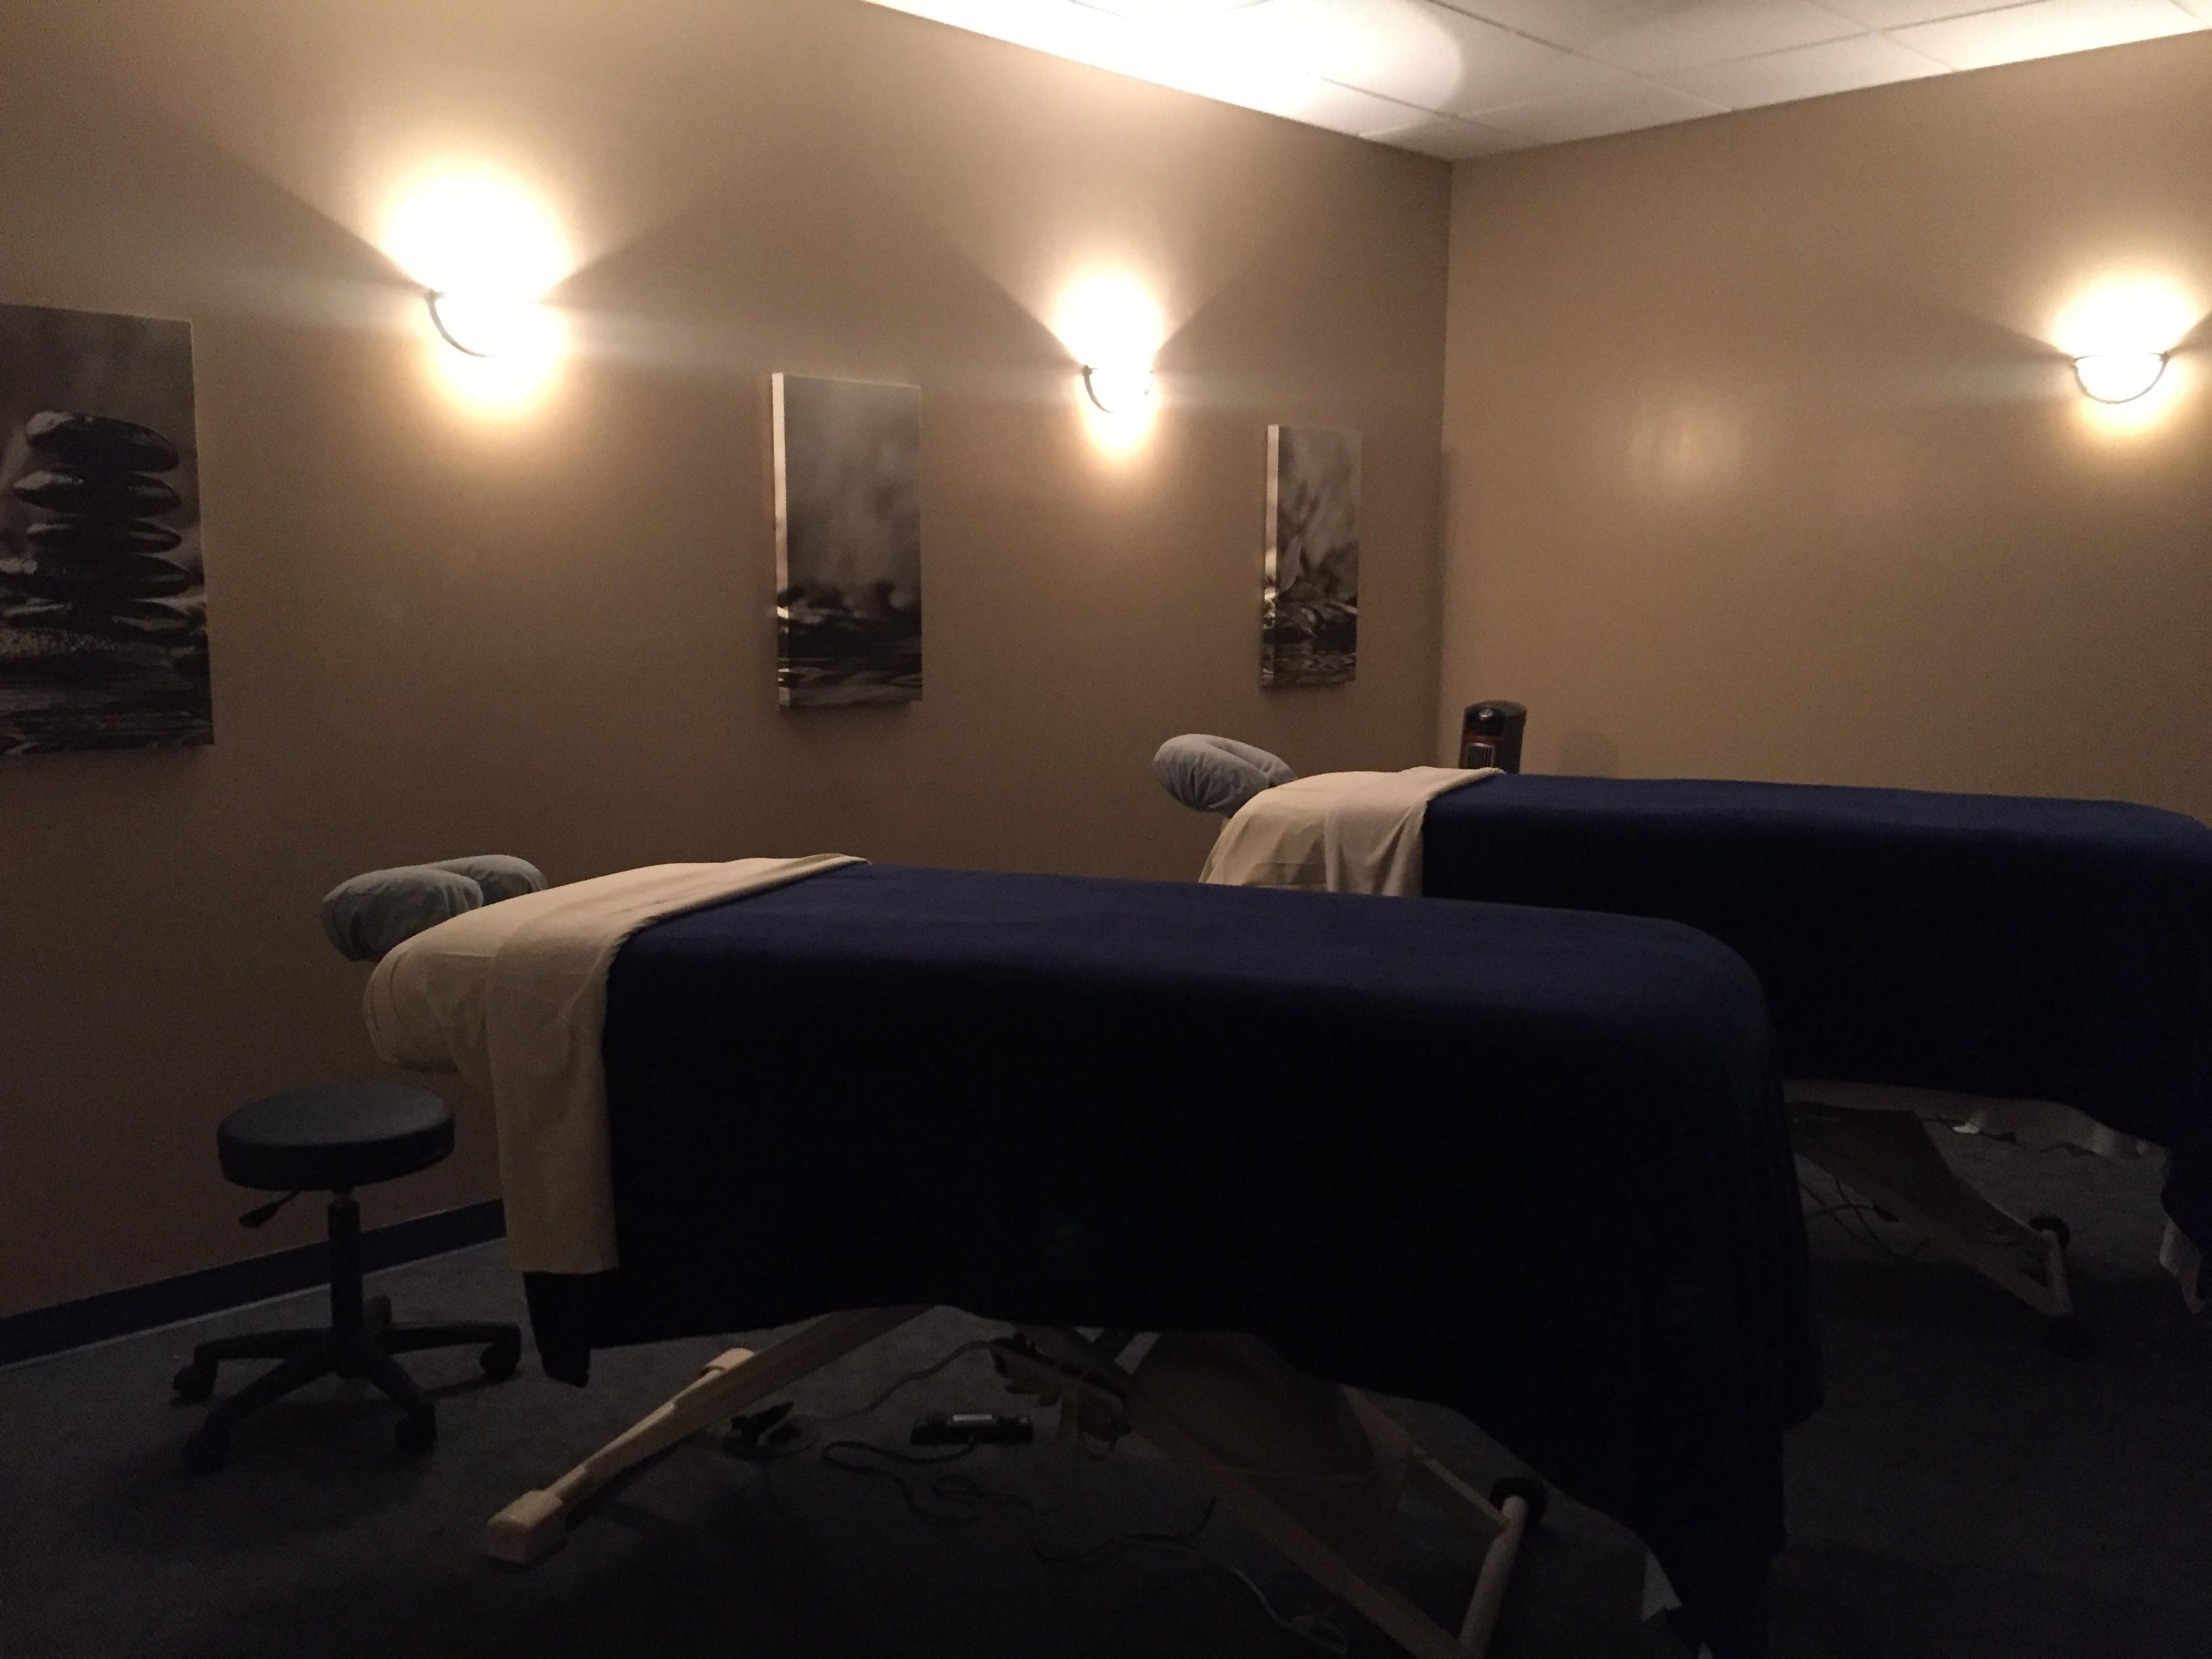 Our lovely couples massage room in Gainesville, FL.